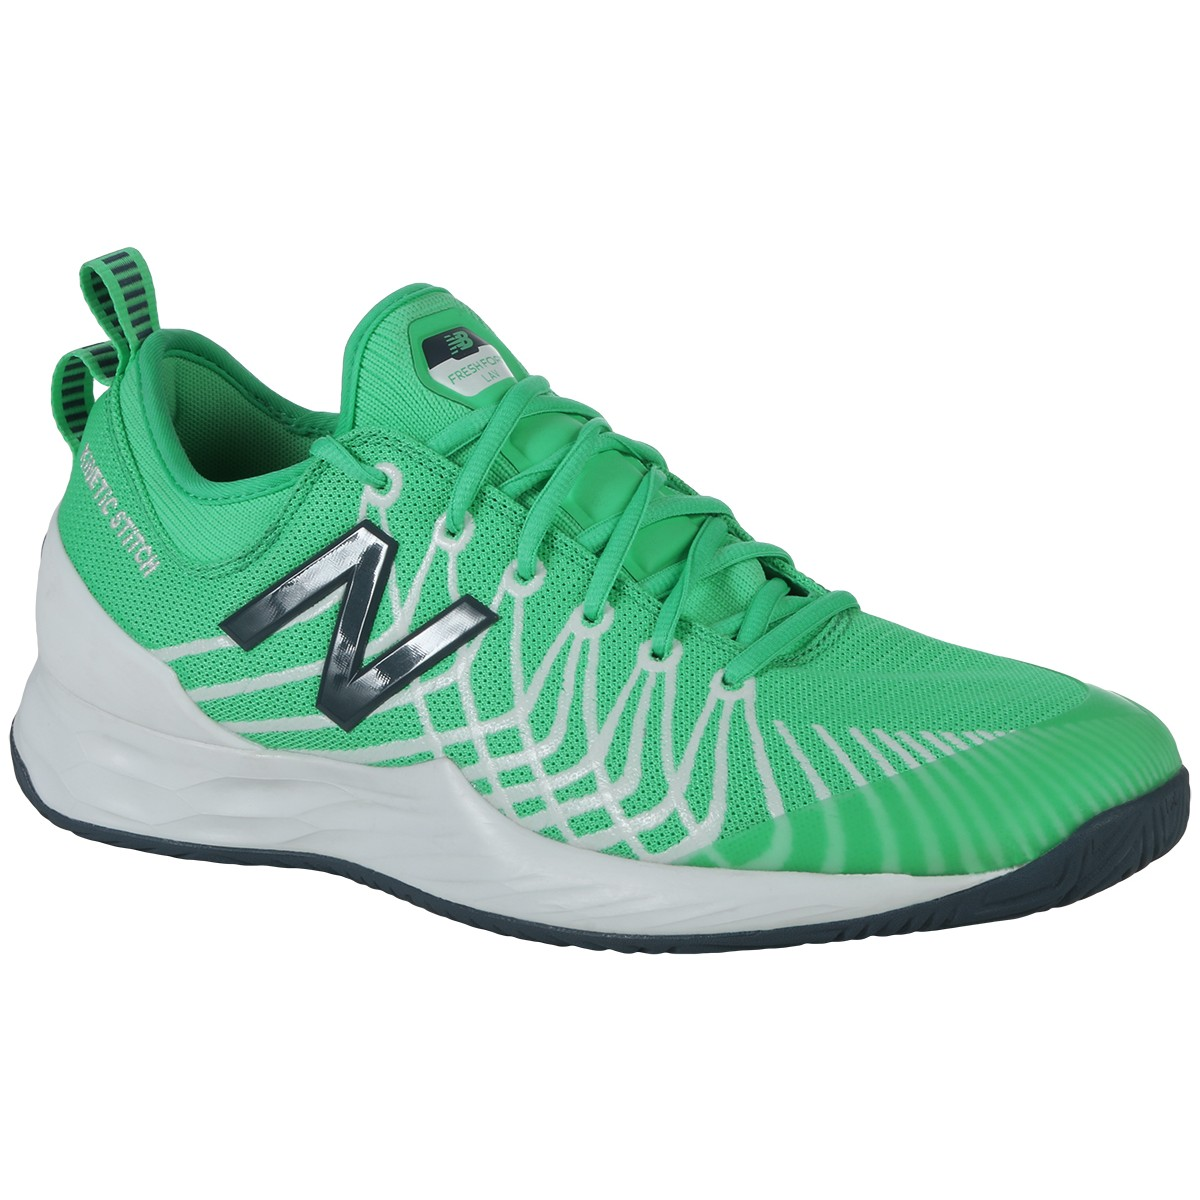 CHAUSSURES NEW BALANCE LAV RAONIC TOUTES SURFACES